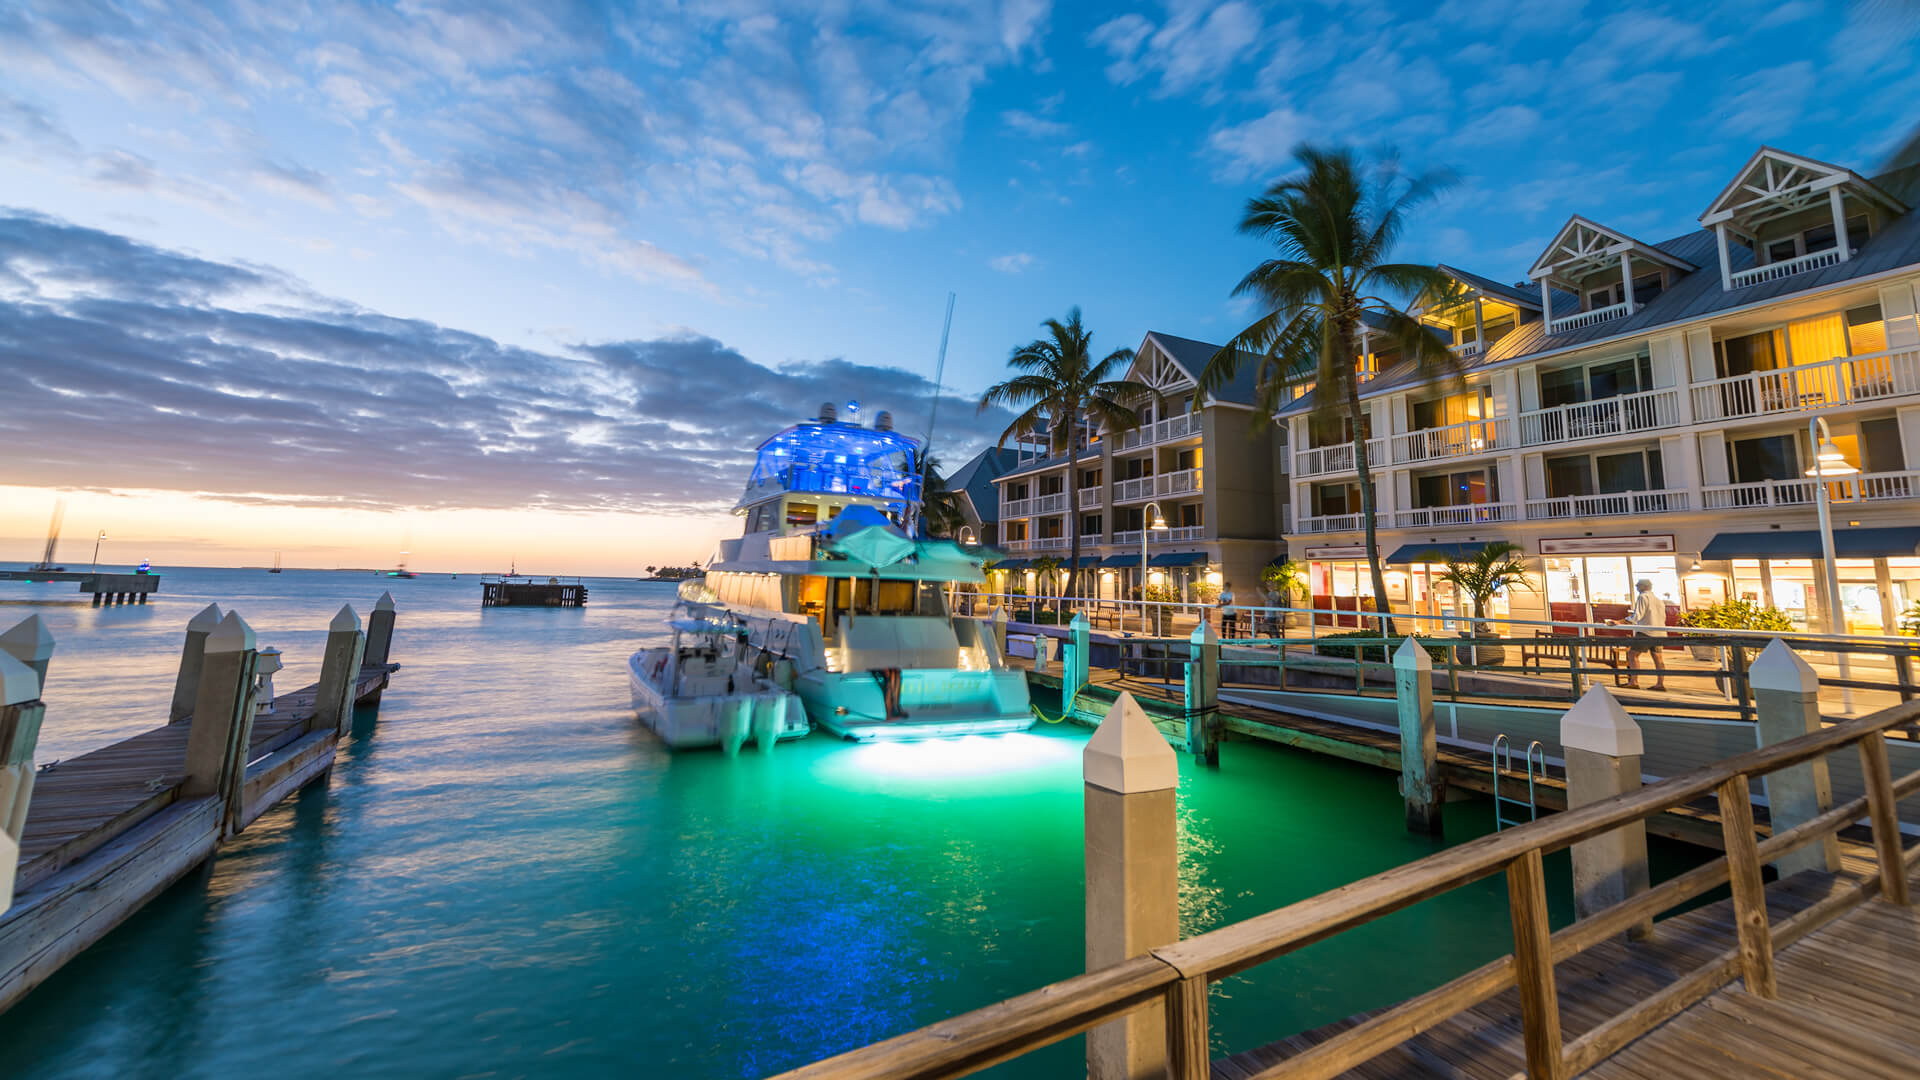 Slide 20 of 32: Meals: $375Drinks (including beer): $47.763-night hotel stay: $565Airfare: $638.36Key West ranked as one of the worst spring break destinations in a previous study — and it doesn't rank too well in this one, either. The main culprits are food and hotel costs. What helps it rank higher in this study is its lower airfare.